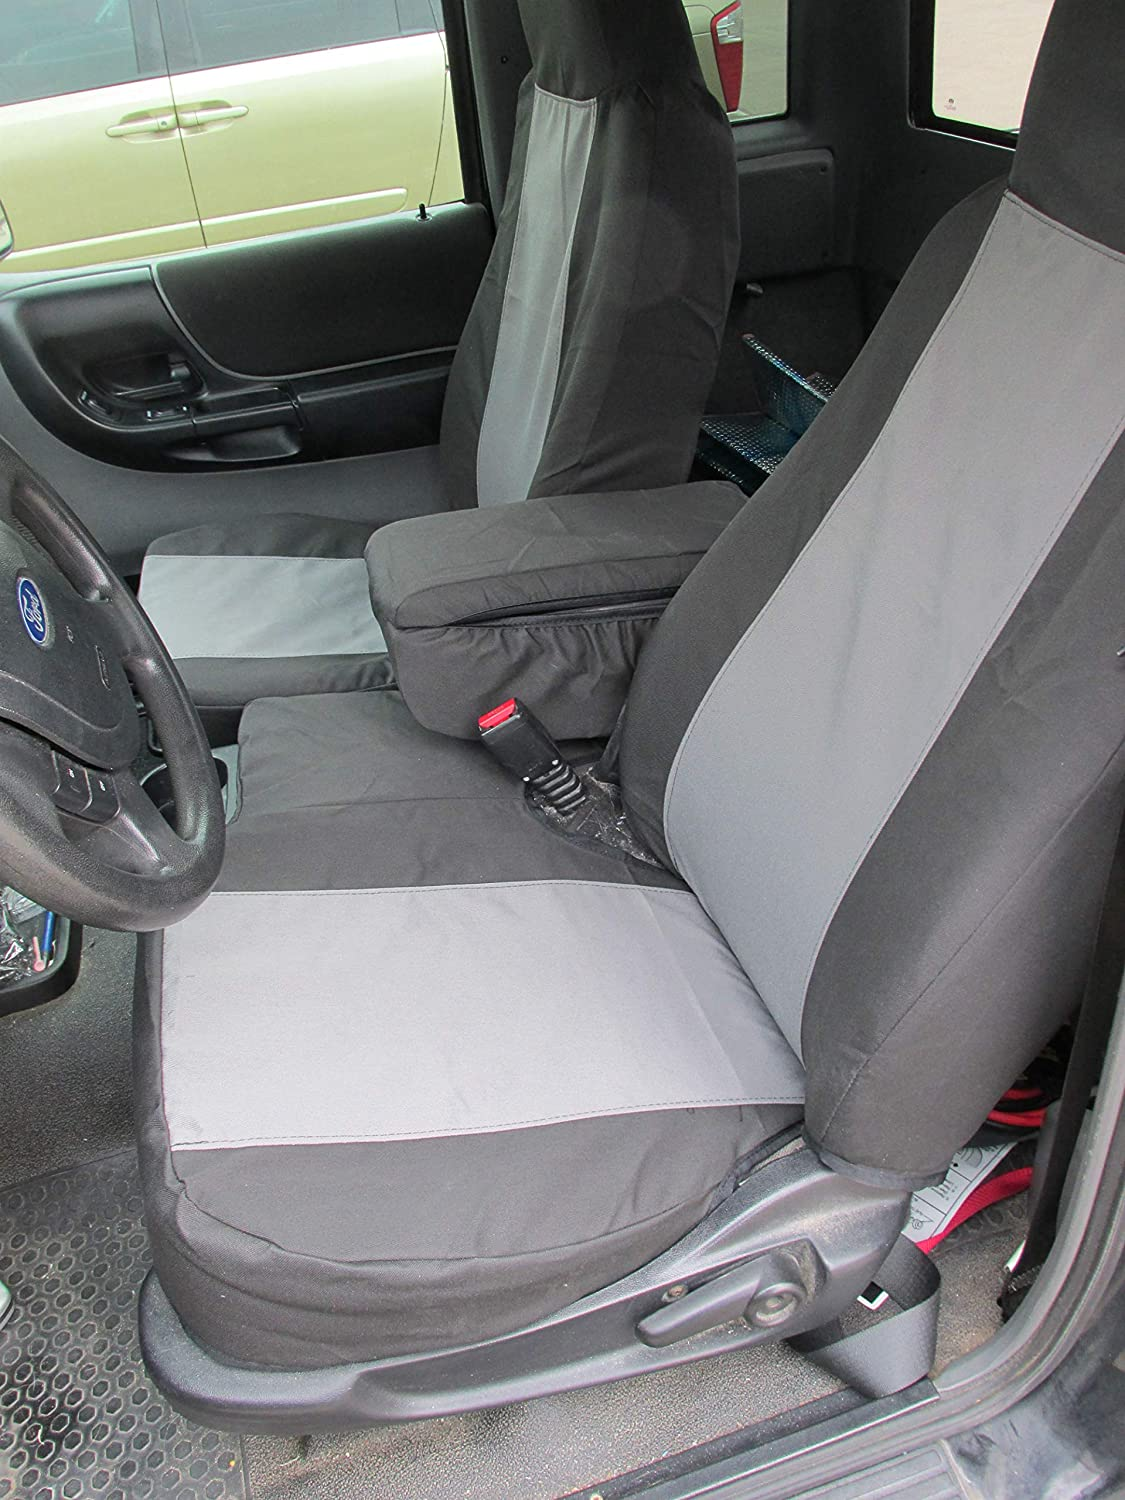 Groovy Durafit Seat Covers Made To Fit 2004 2005 Ford Ranger Pickup 60 40 Split Bench Seat Custom Seat Covers With Opening Console Black Gray Automotive Andrewgaddart Wooden Chair Designs For Living Room Andrewgaddartcom